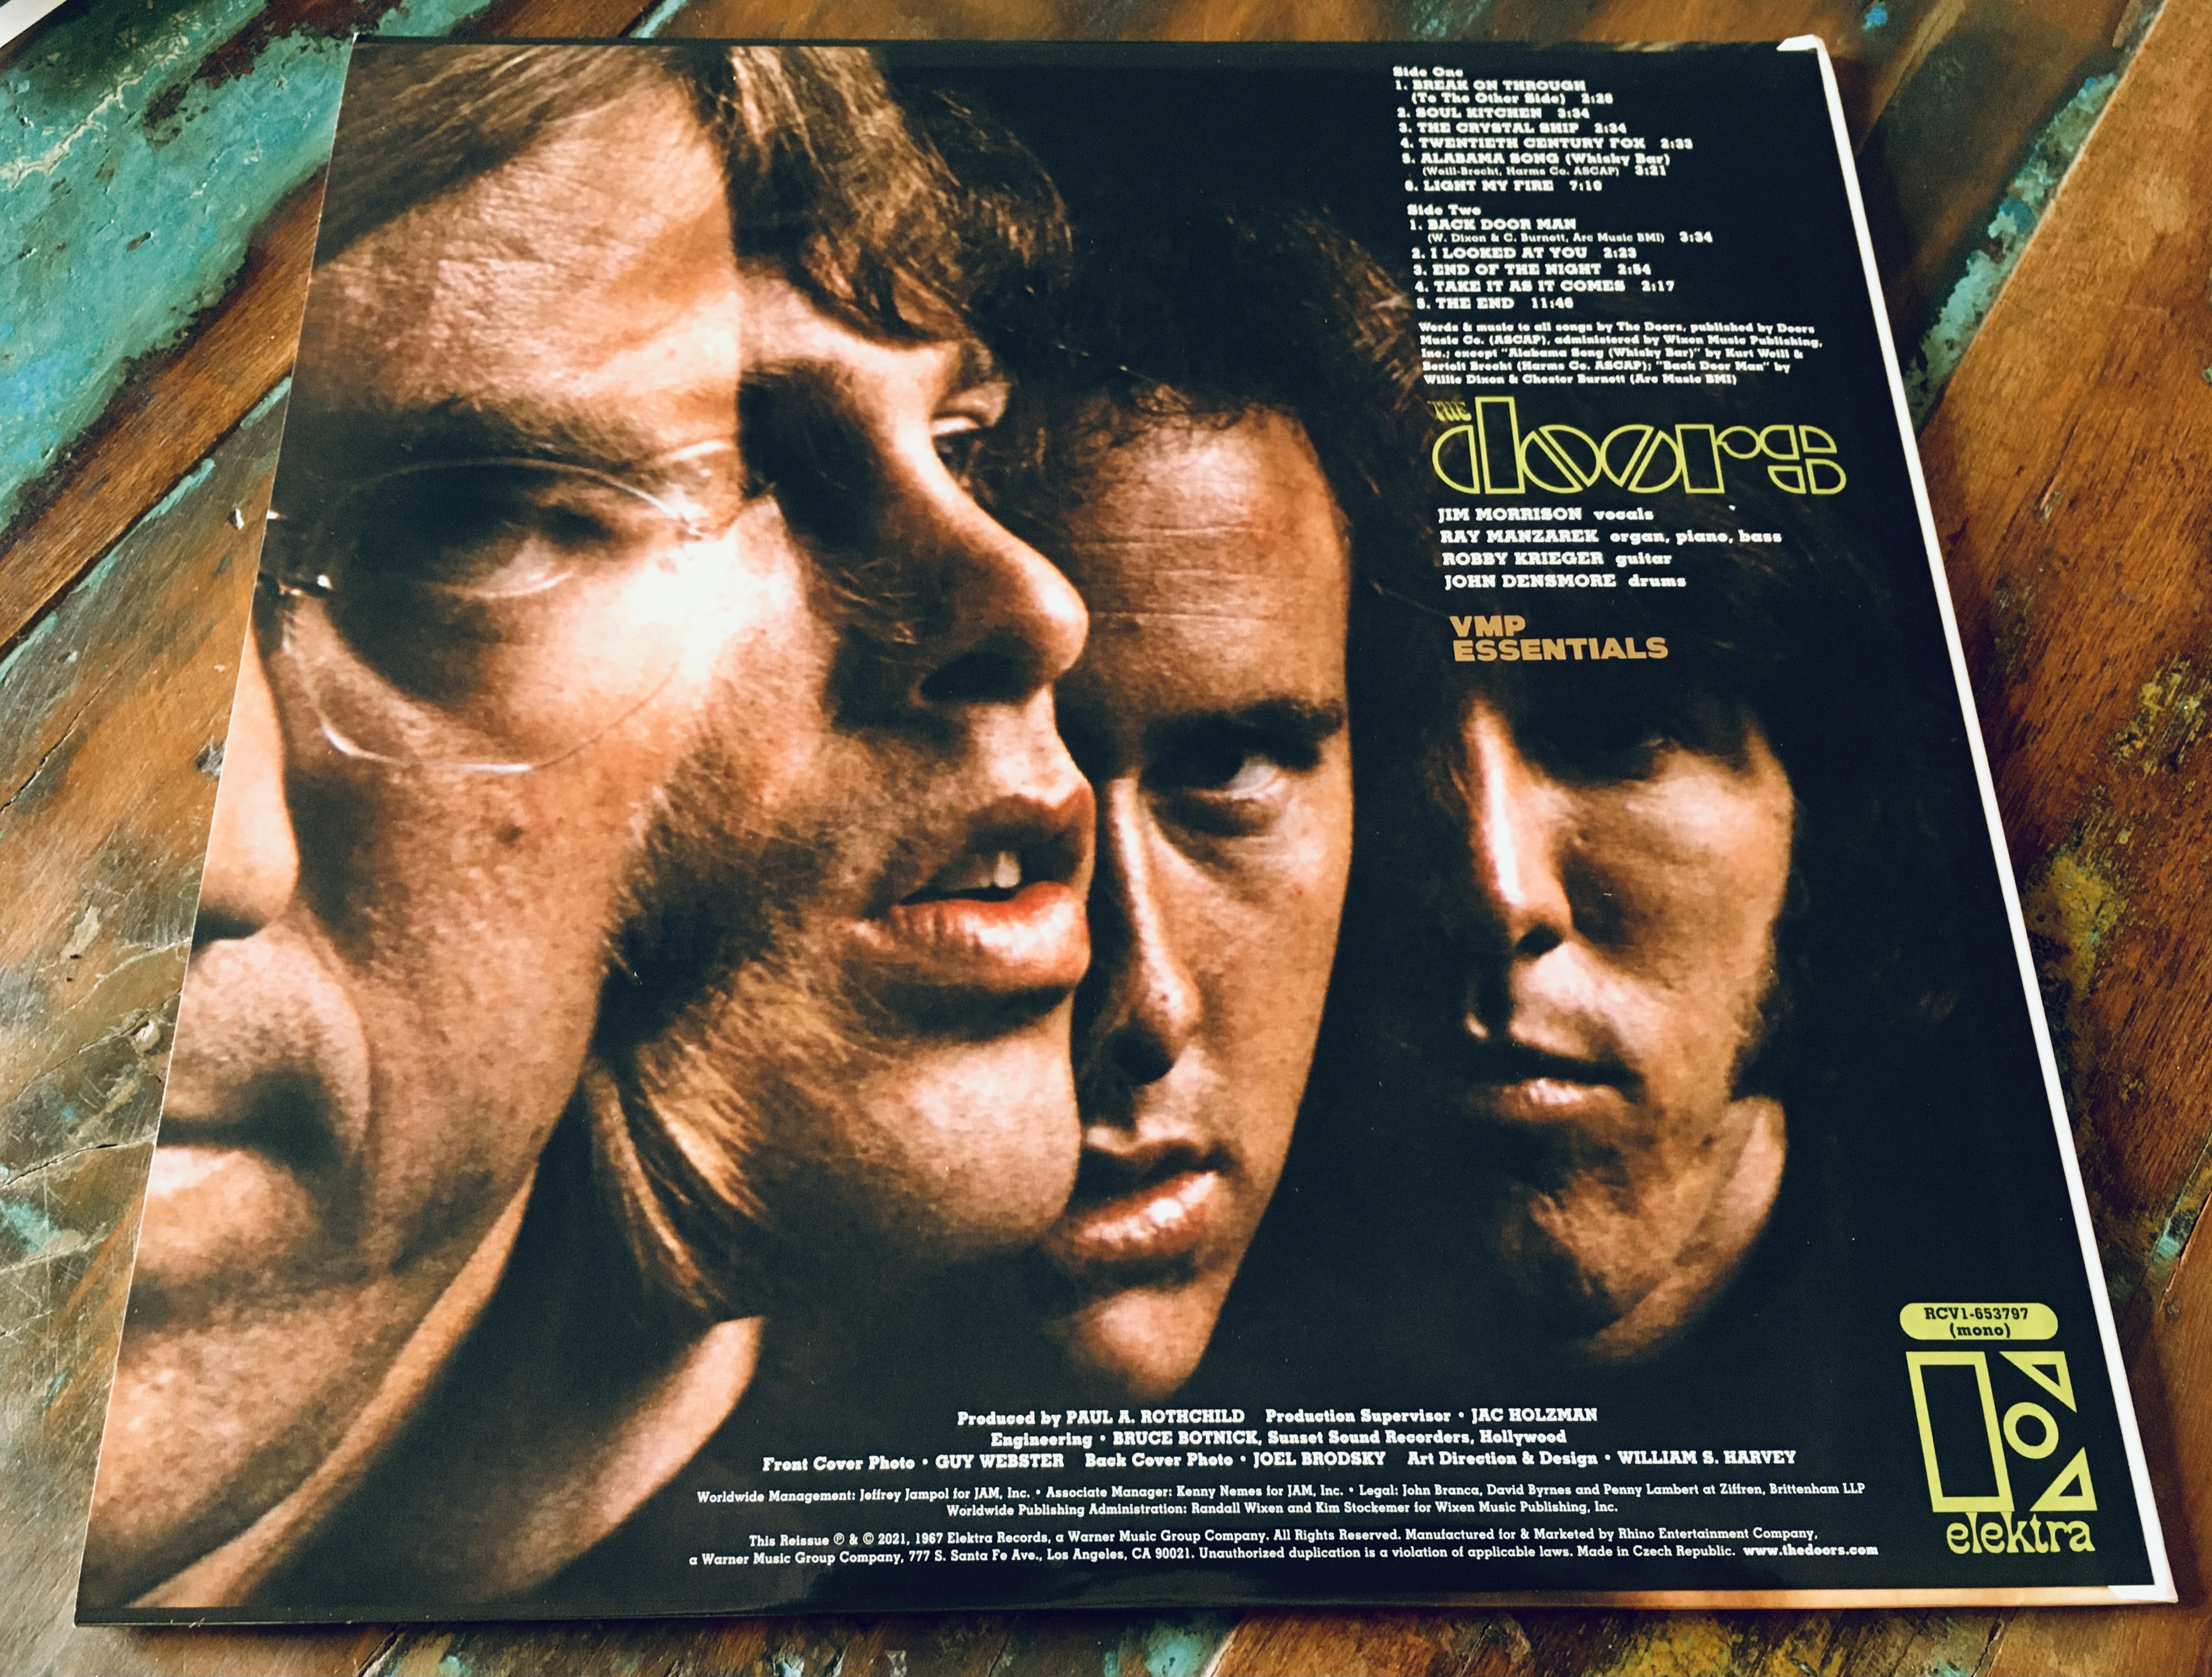 Geek insider, geekinsider, geekinsider. Com,, vmp june 2021 unboxing - the doors 'the doors', culture, featured, geek life, music, reviews